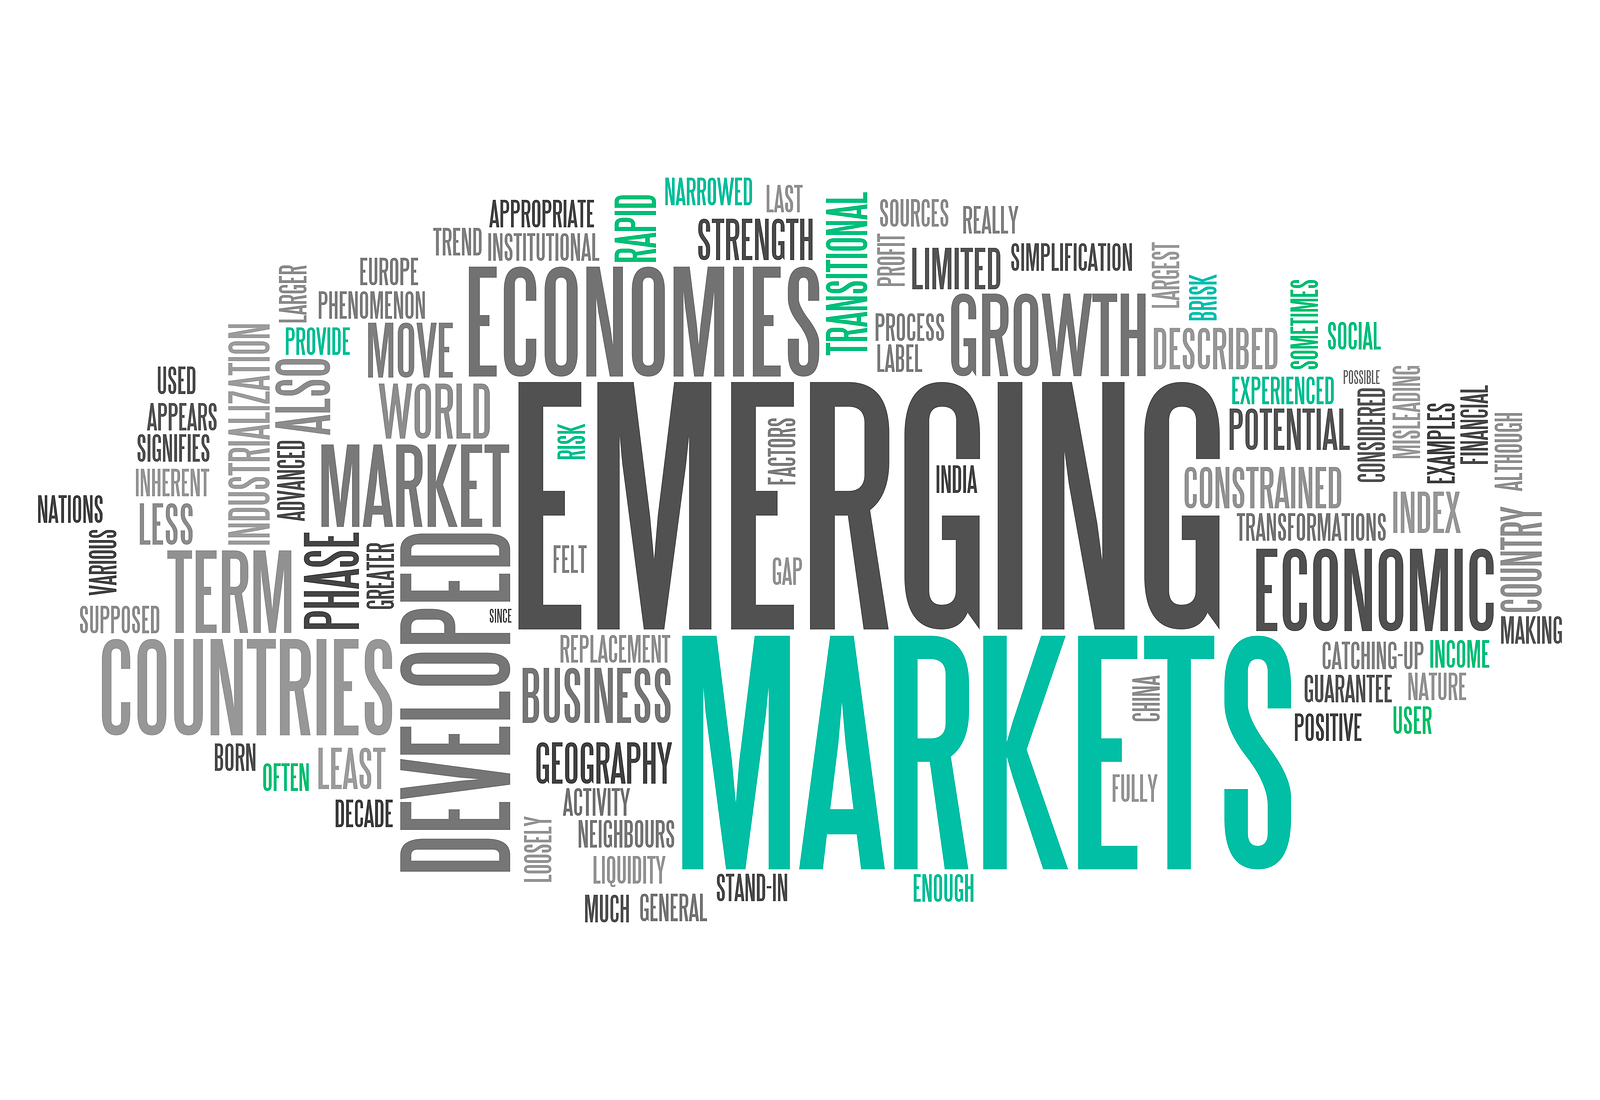 Emerging markets key to global brands' expansion plans